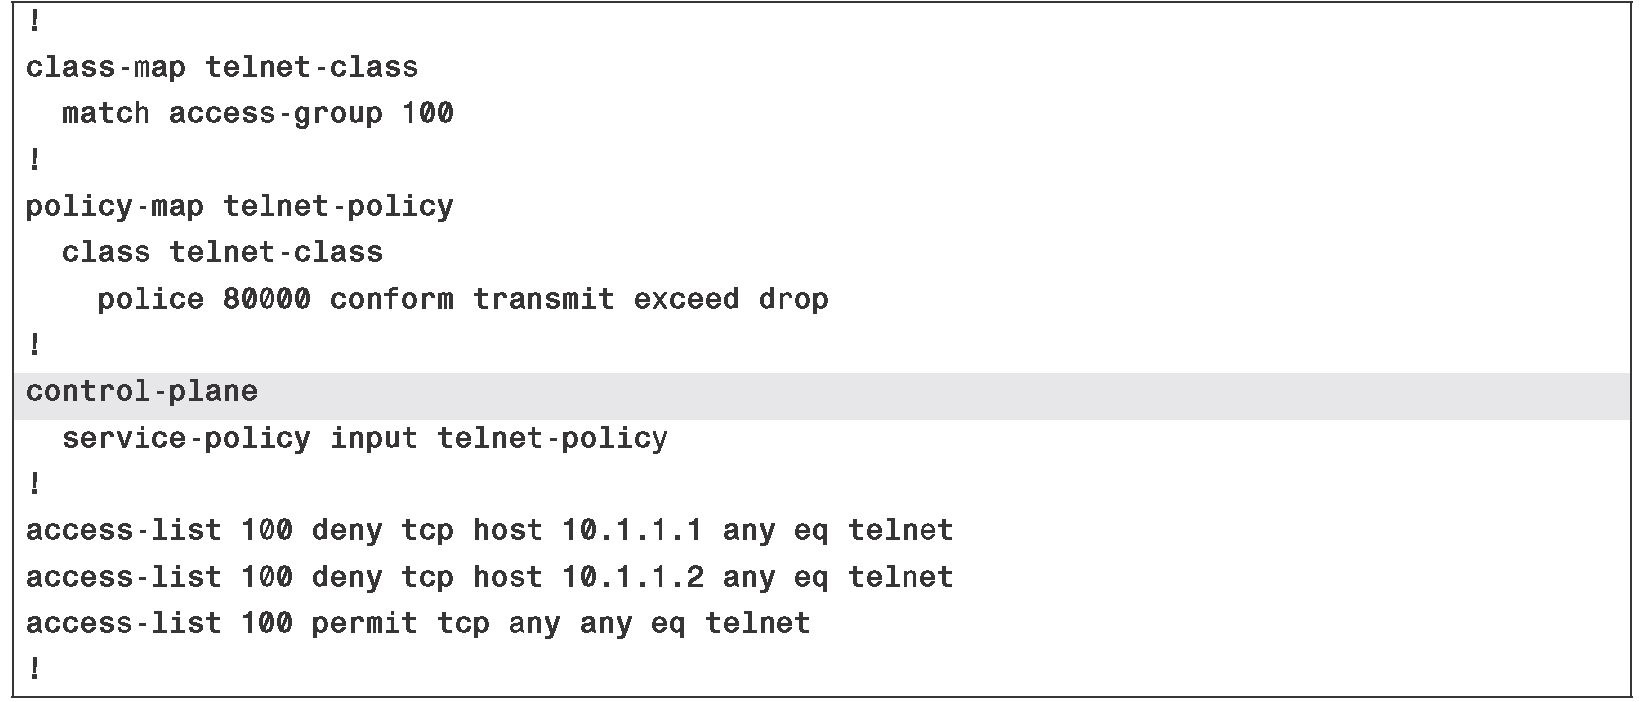 Deploying End-to-End QoS Part 2 on